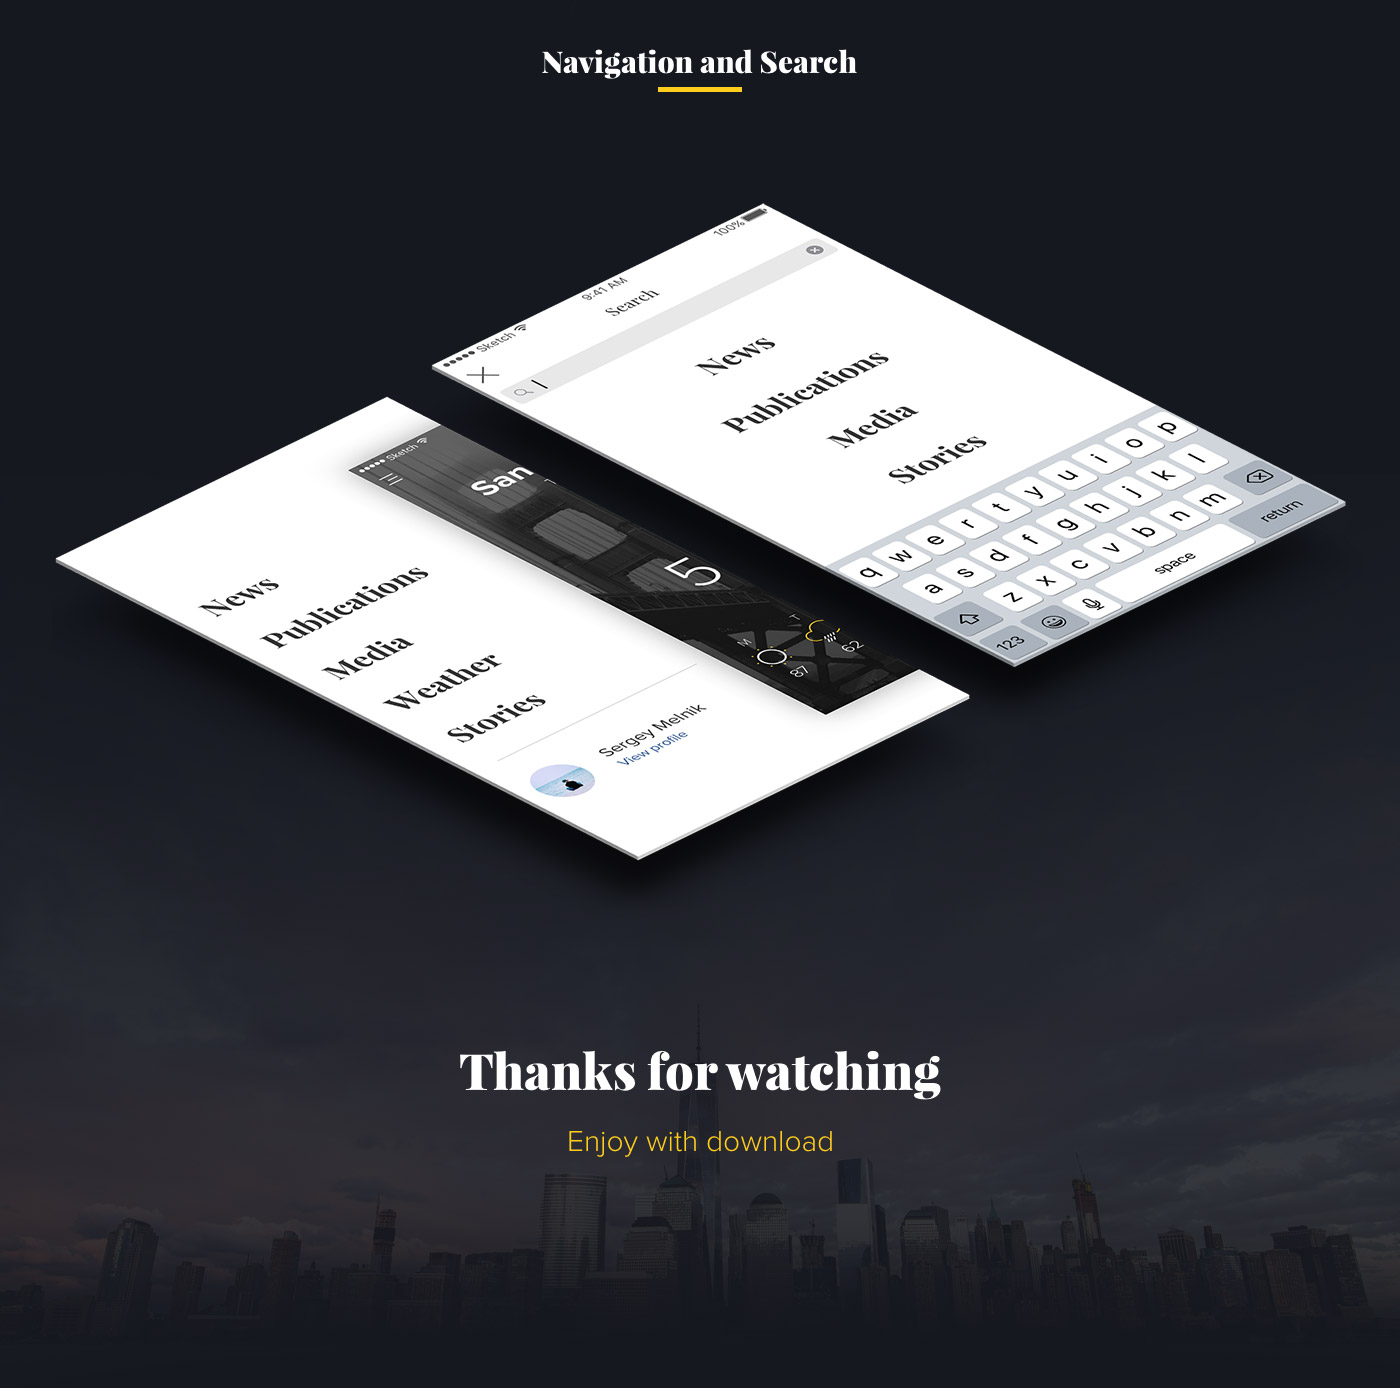 Dark Theme News and Media App design for sketch and iOS 9